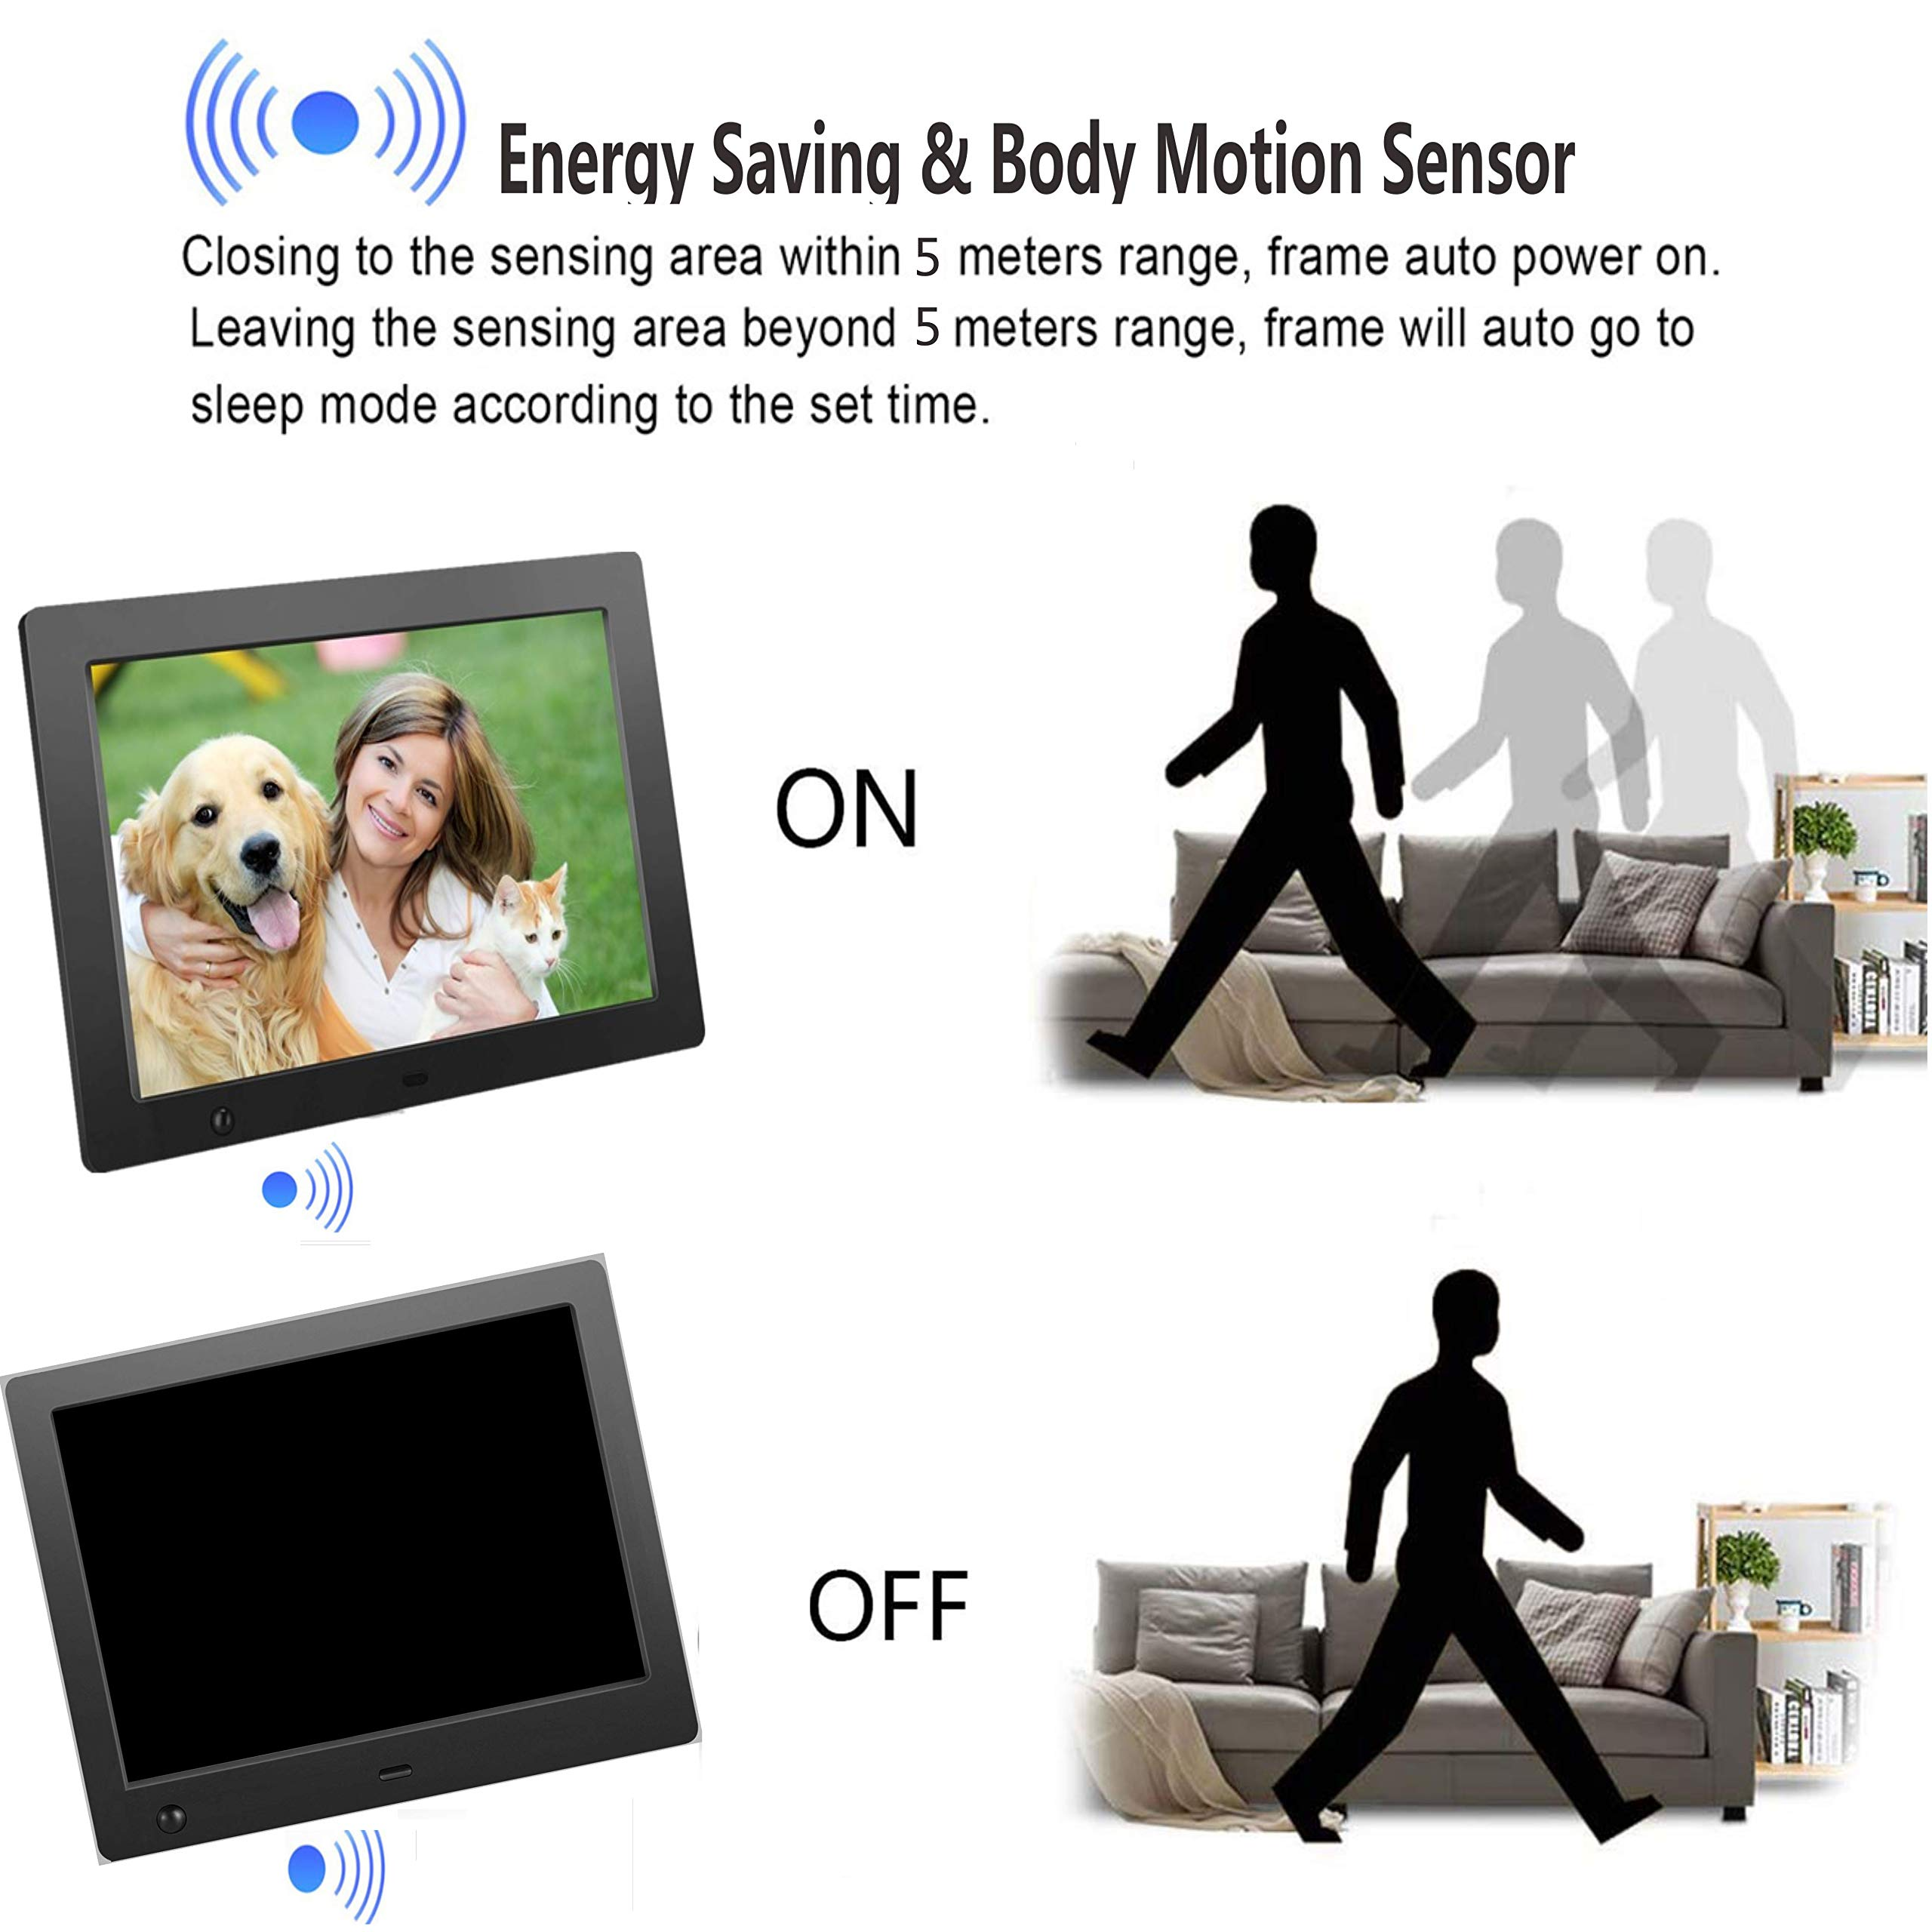 Digital Picture Frame 8 inch, Digital Photo Frame Video Player with Motion Sensor Smart Electronics Picture Frame High Resolution 1024x768 IPS LCD/1080P 720P /Stereo/MP3/Calendar/Time/Remote Control by Quality Life (Image #4)